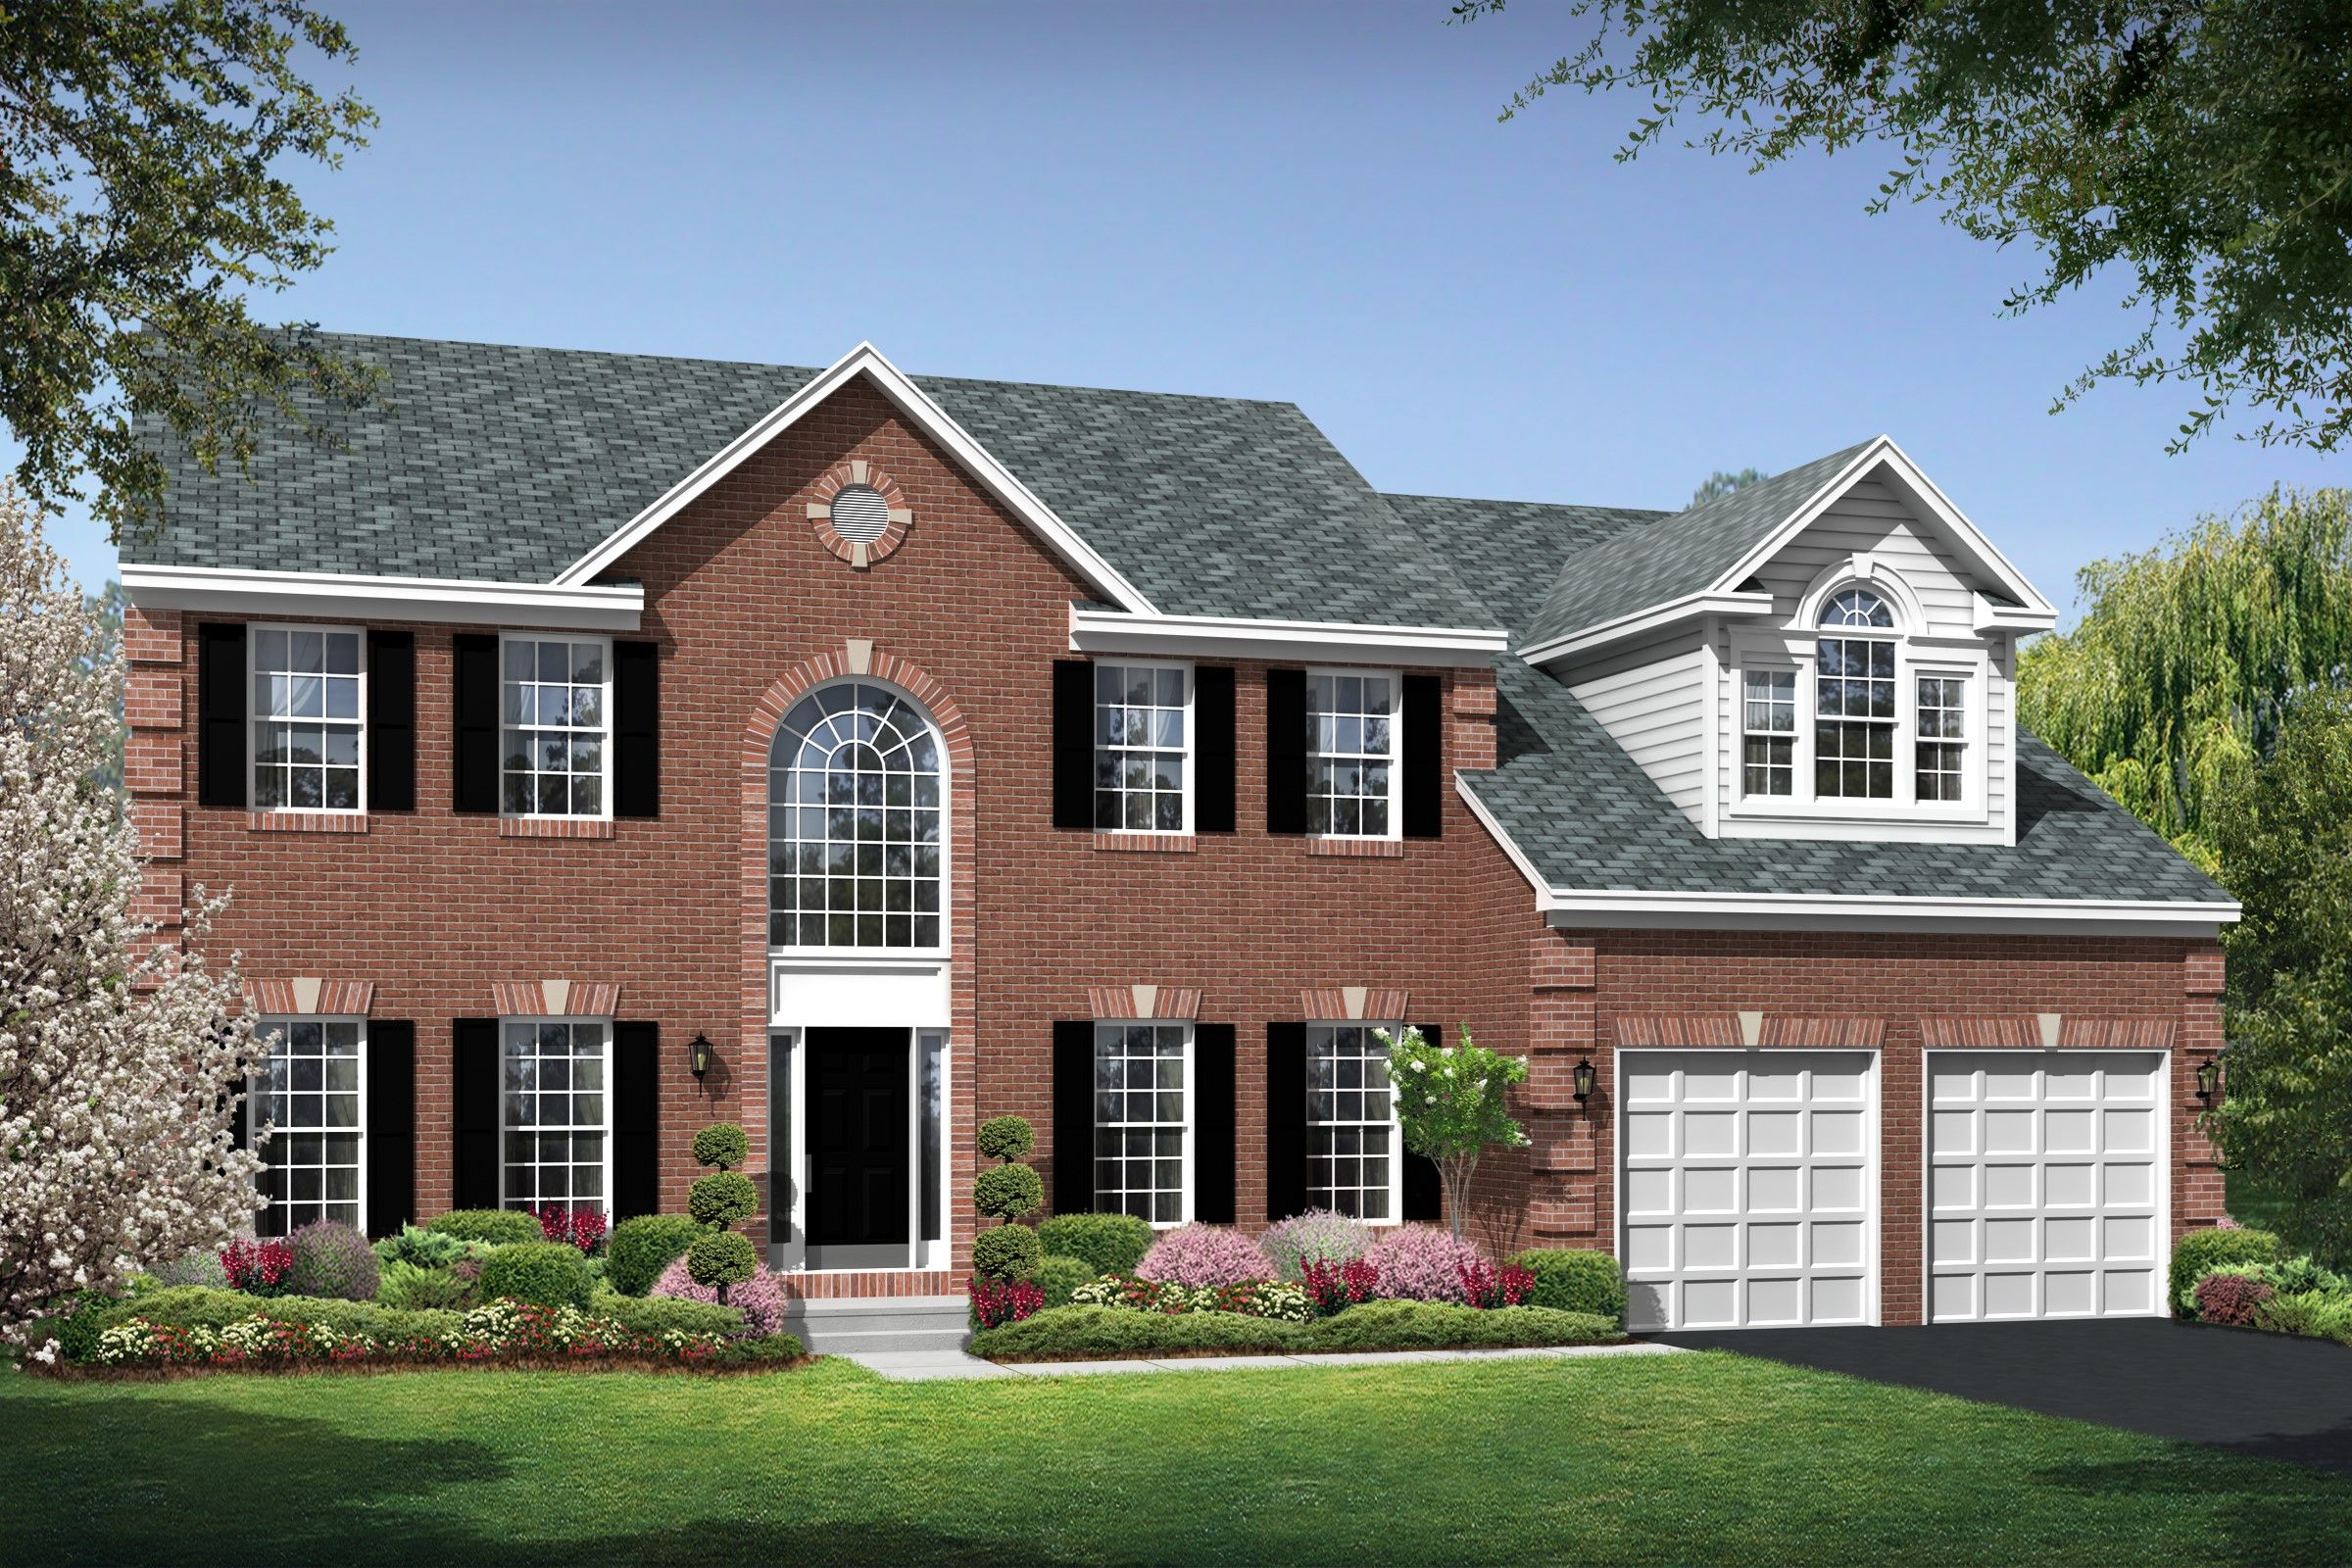 Single Family for Active at Cardinal View At Eagles Pointe - Colorado 16378 Kramer Estate Drive Woodbridge, Virginia 22191 United States